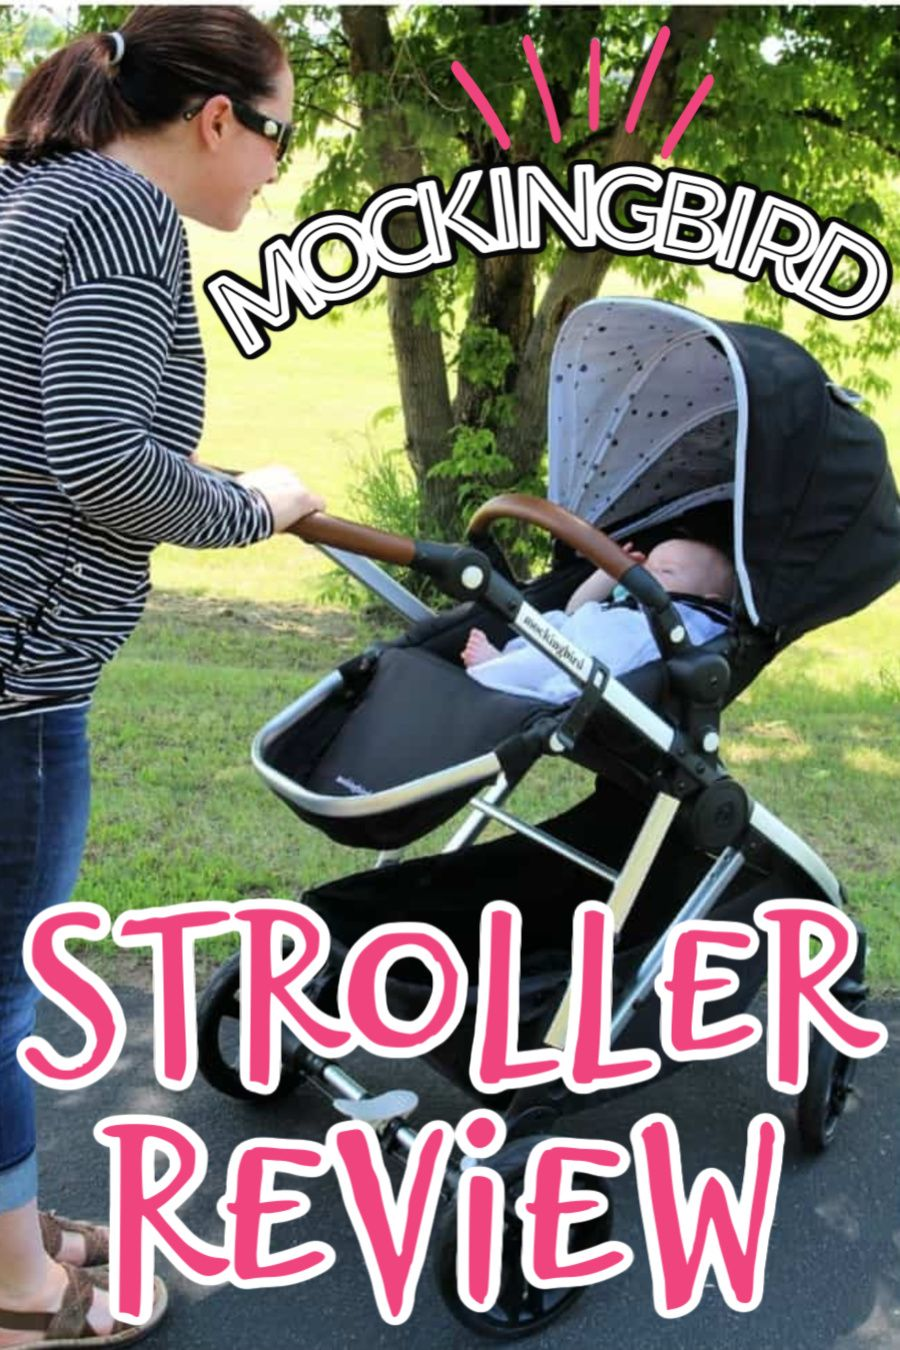 Mockingbird Stroller Review in 2020 Stroller reviews